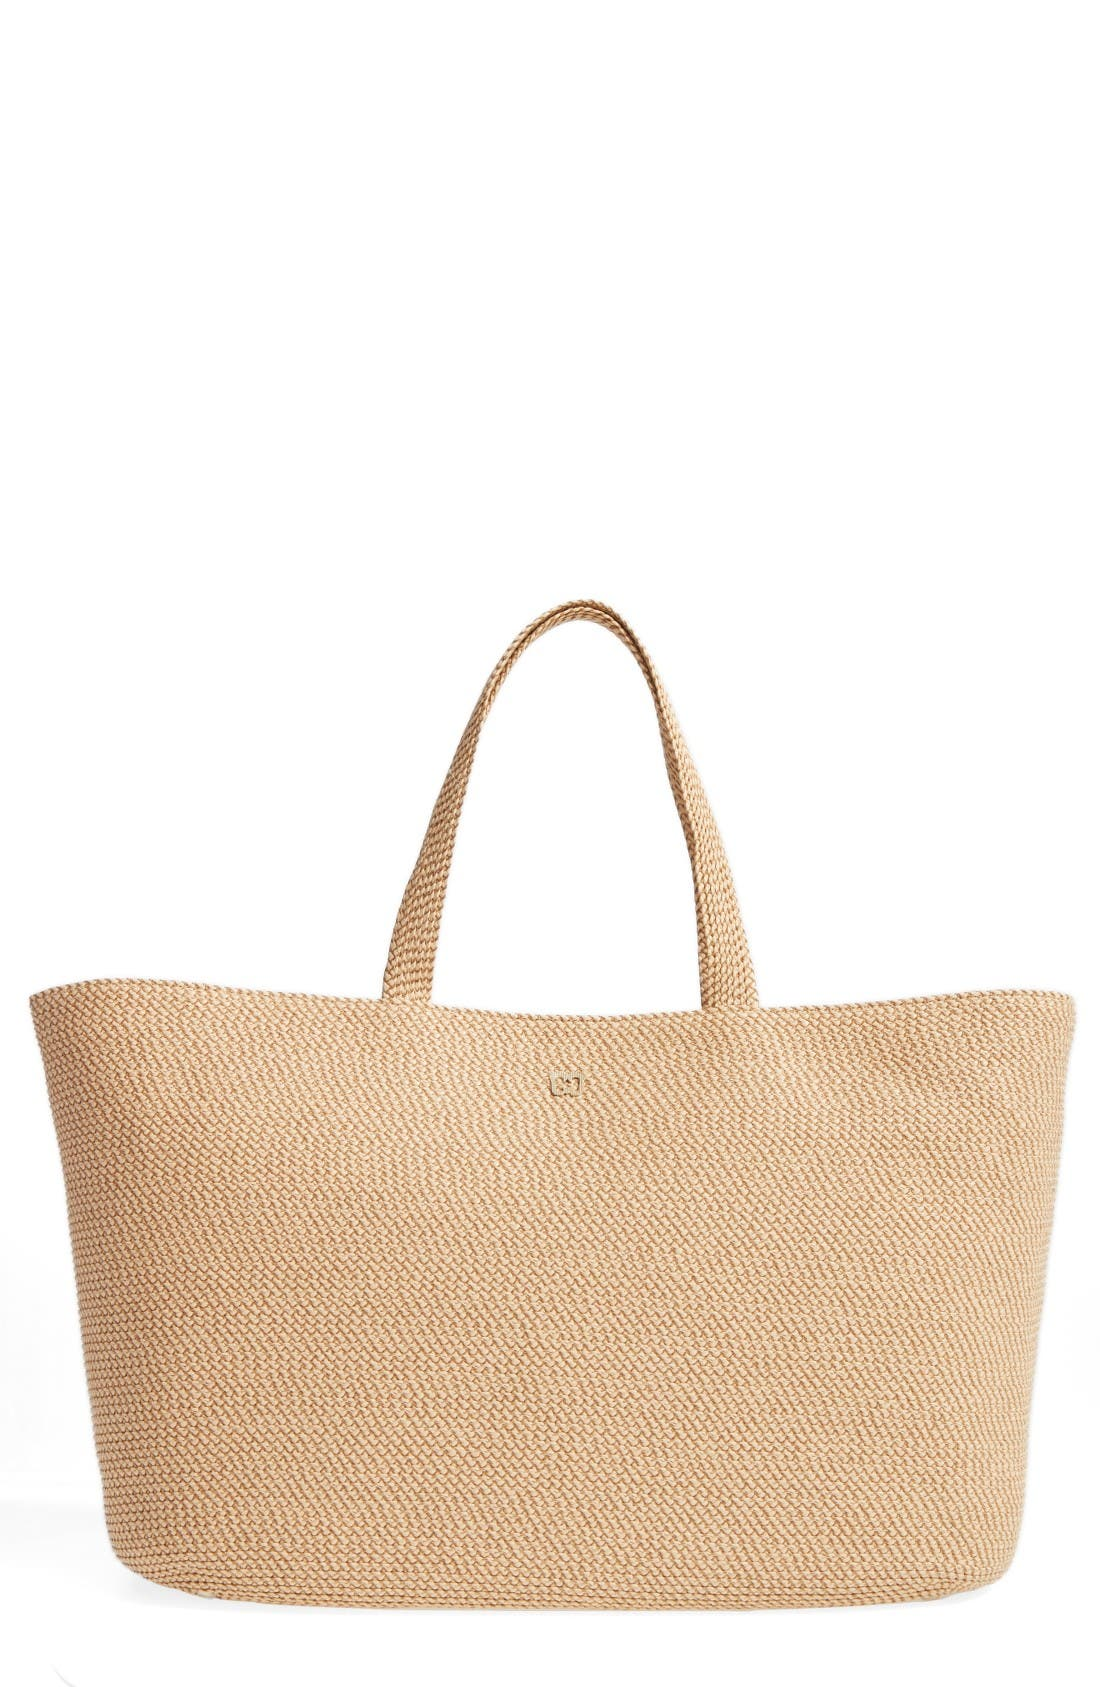 Eric Javits 'Sinclair' Squishee® Tote